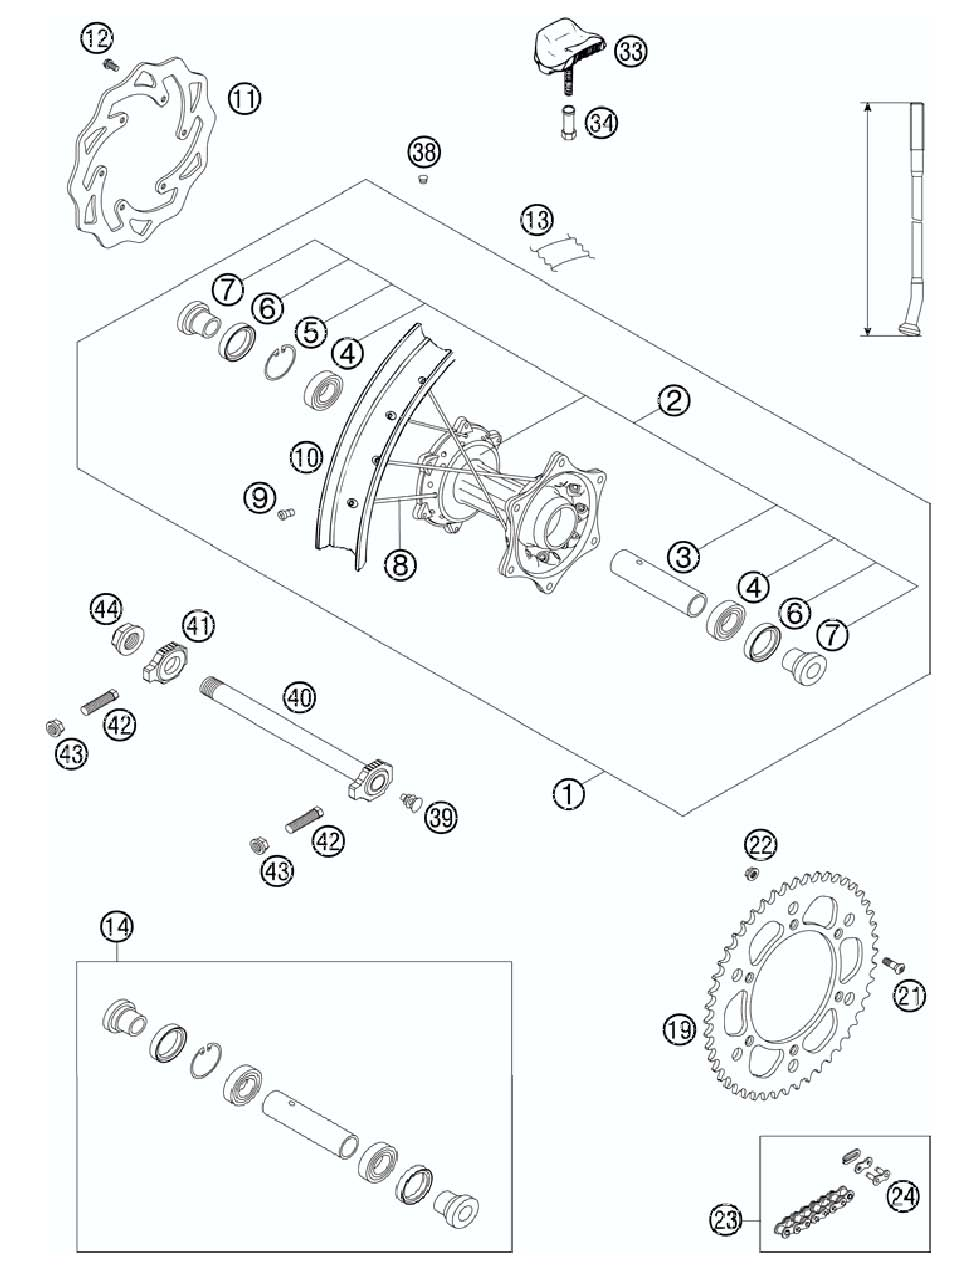 ... 2004 Honda Rancher 400 Fuse Box Diagram besides Jeep Forum Wrangler 4 0  Engine Diagram additionally ...